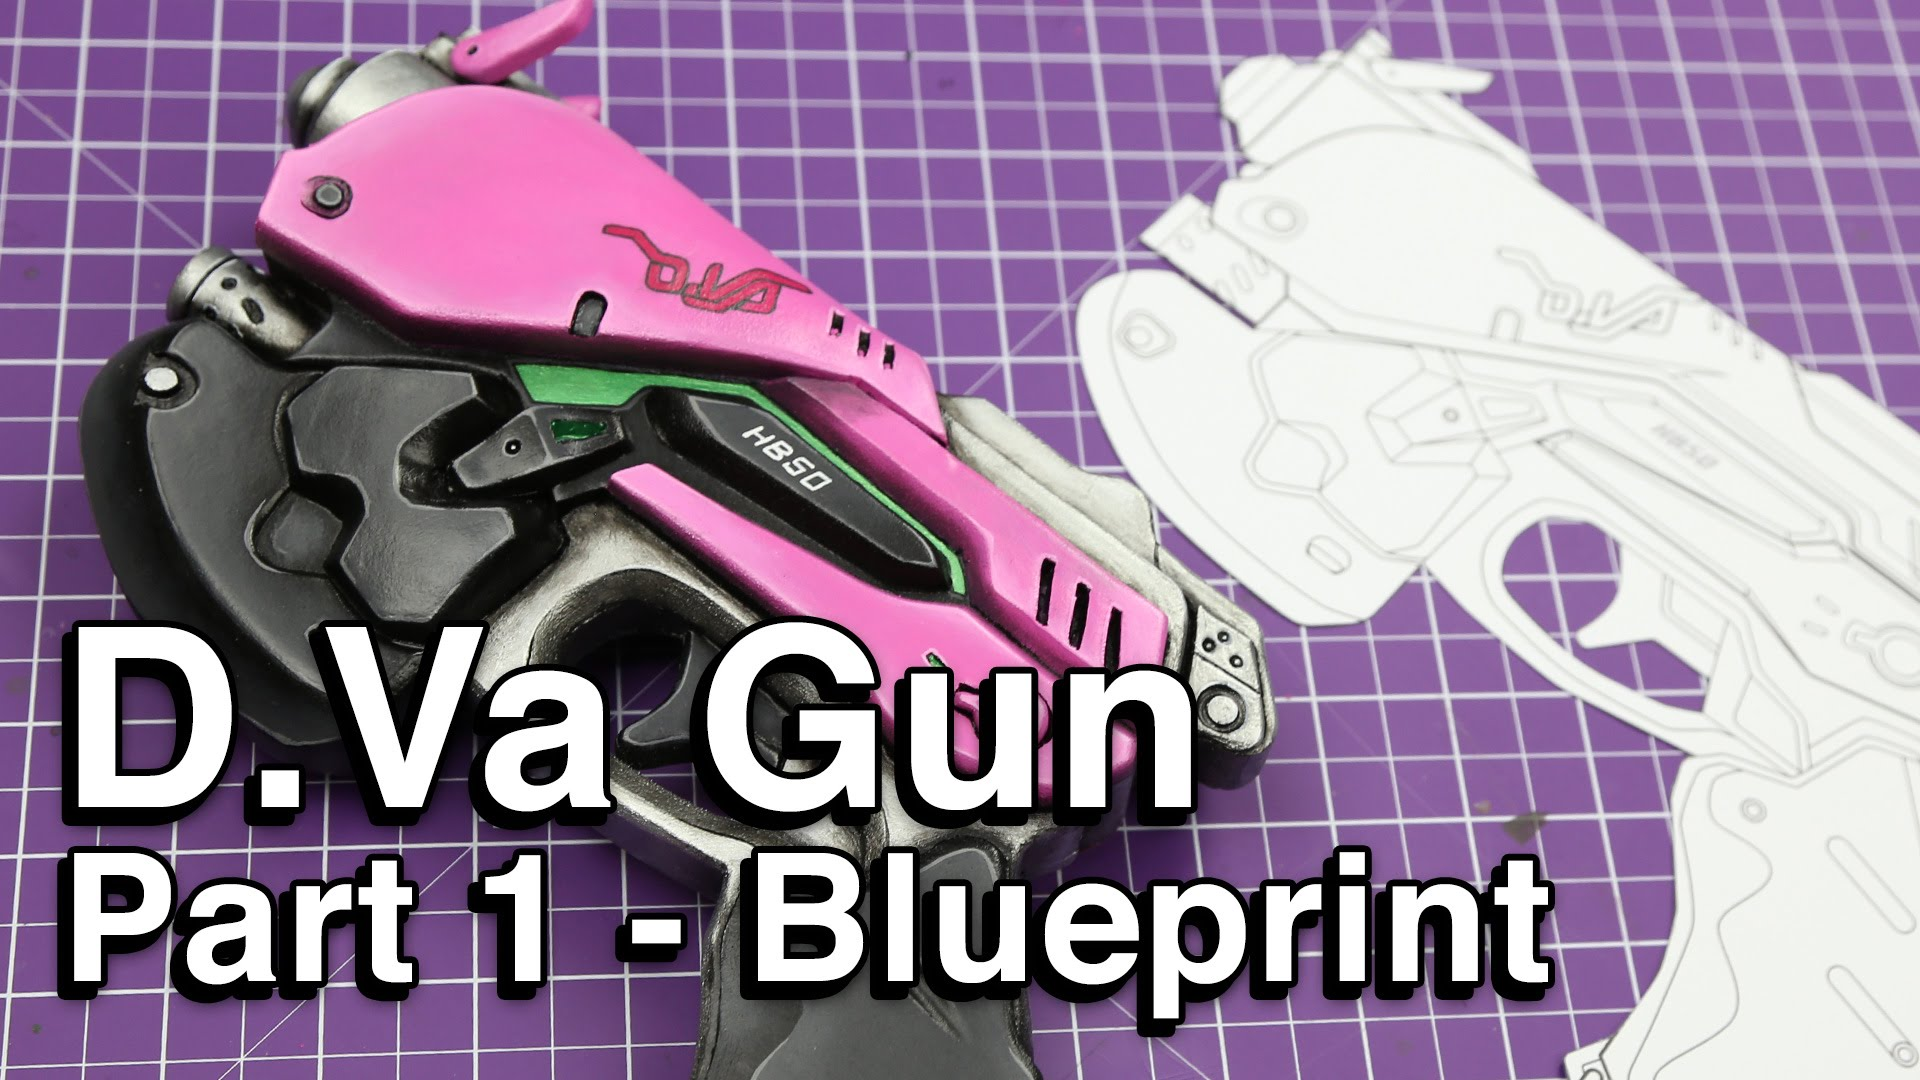 Overwatch d gun how to from kamui cosplay adafruit industries overwatch d gun how to from kamui cosplay adafruit industries makers hackers artists designers and engineers malvernweather Image collections